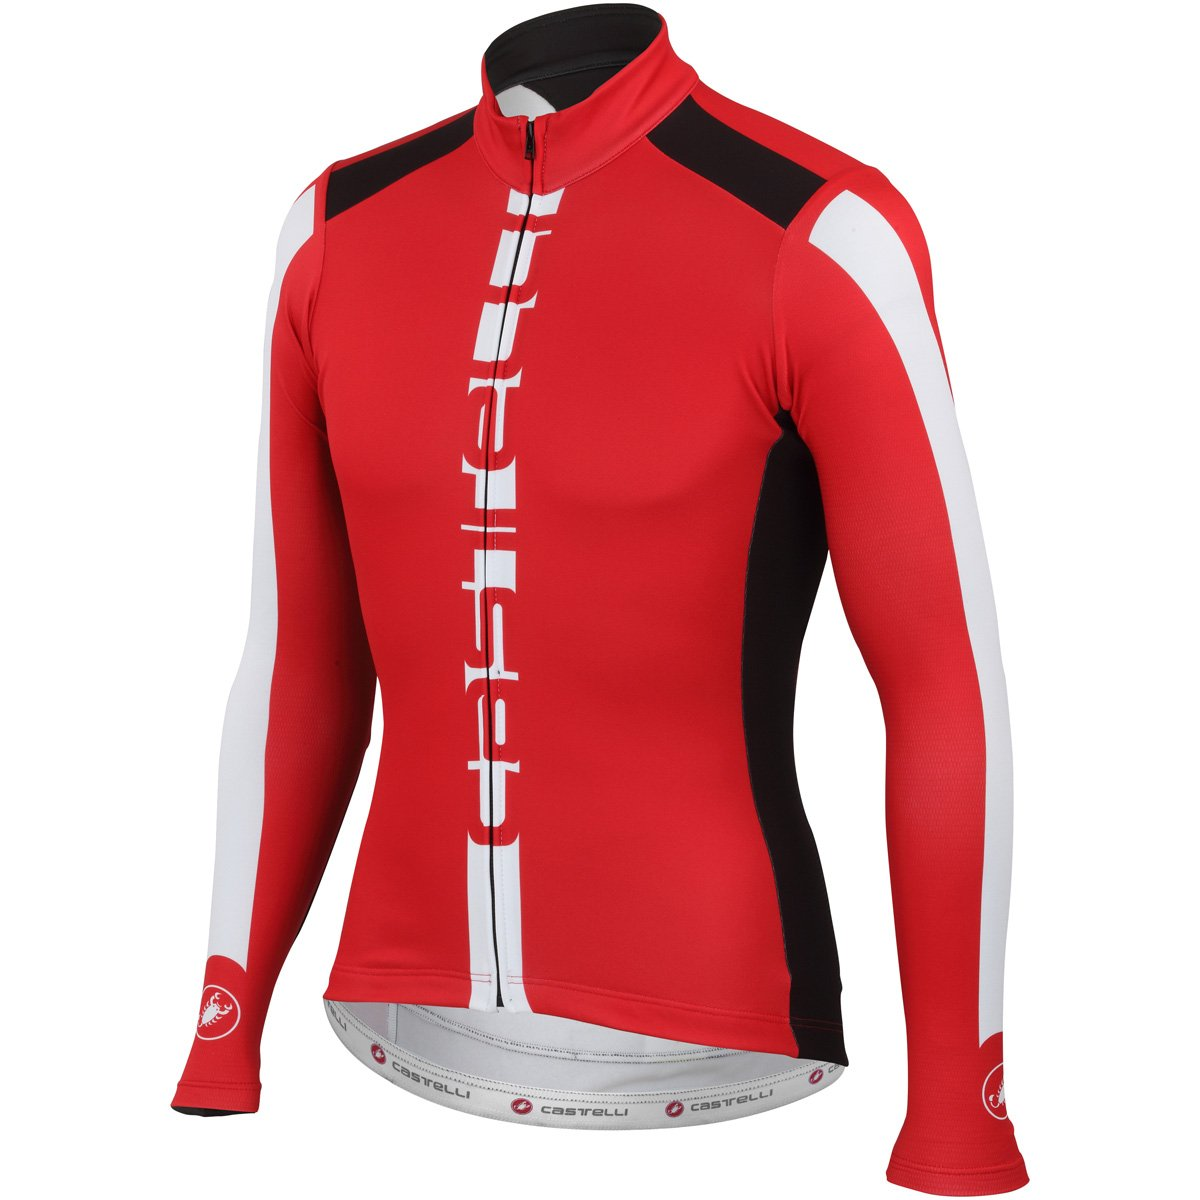 Amazon.com   Castelli AR Jersey FZ Red Blk Wht Size M   Sports   Outdoors 6607088f5